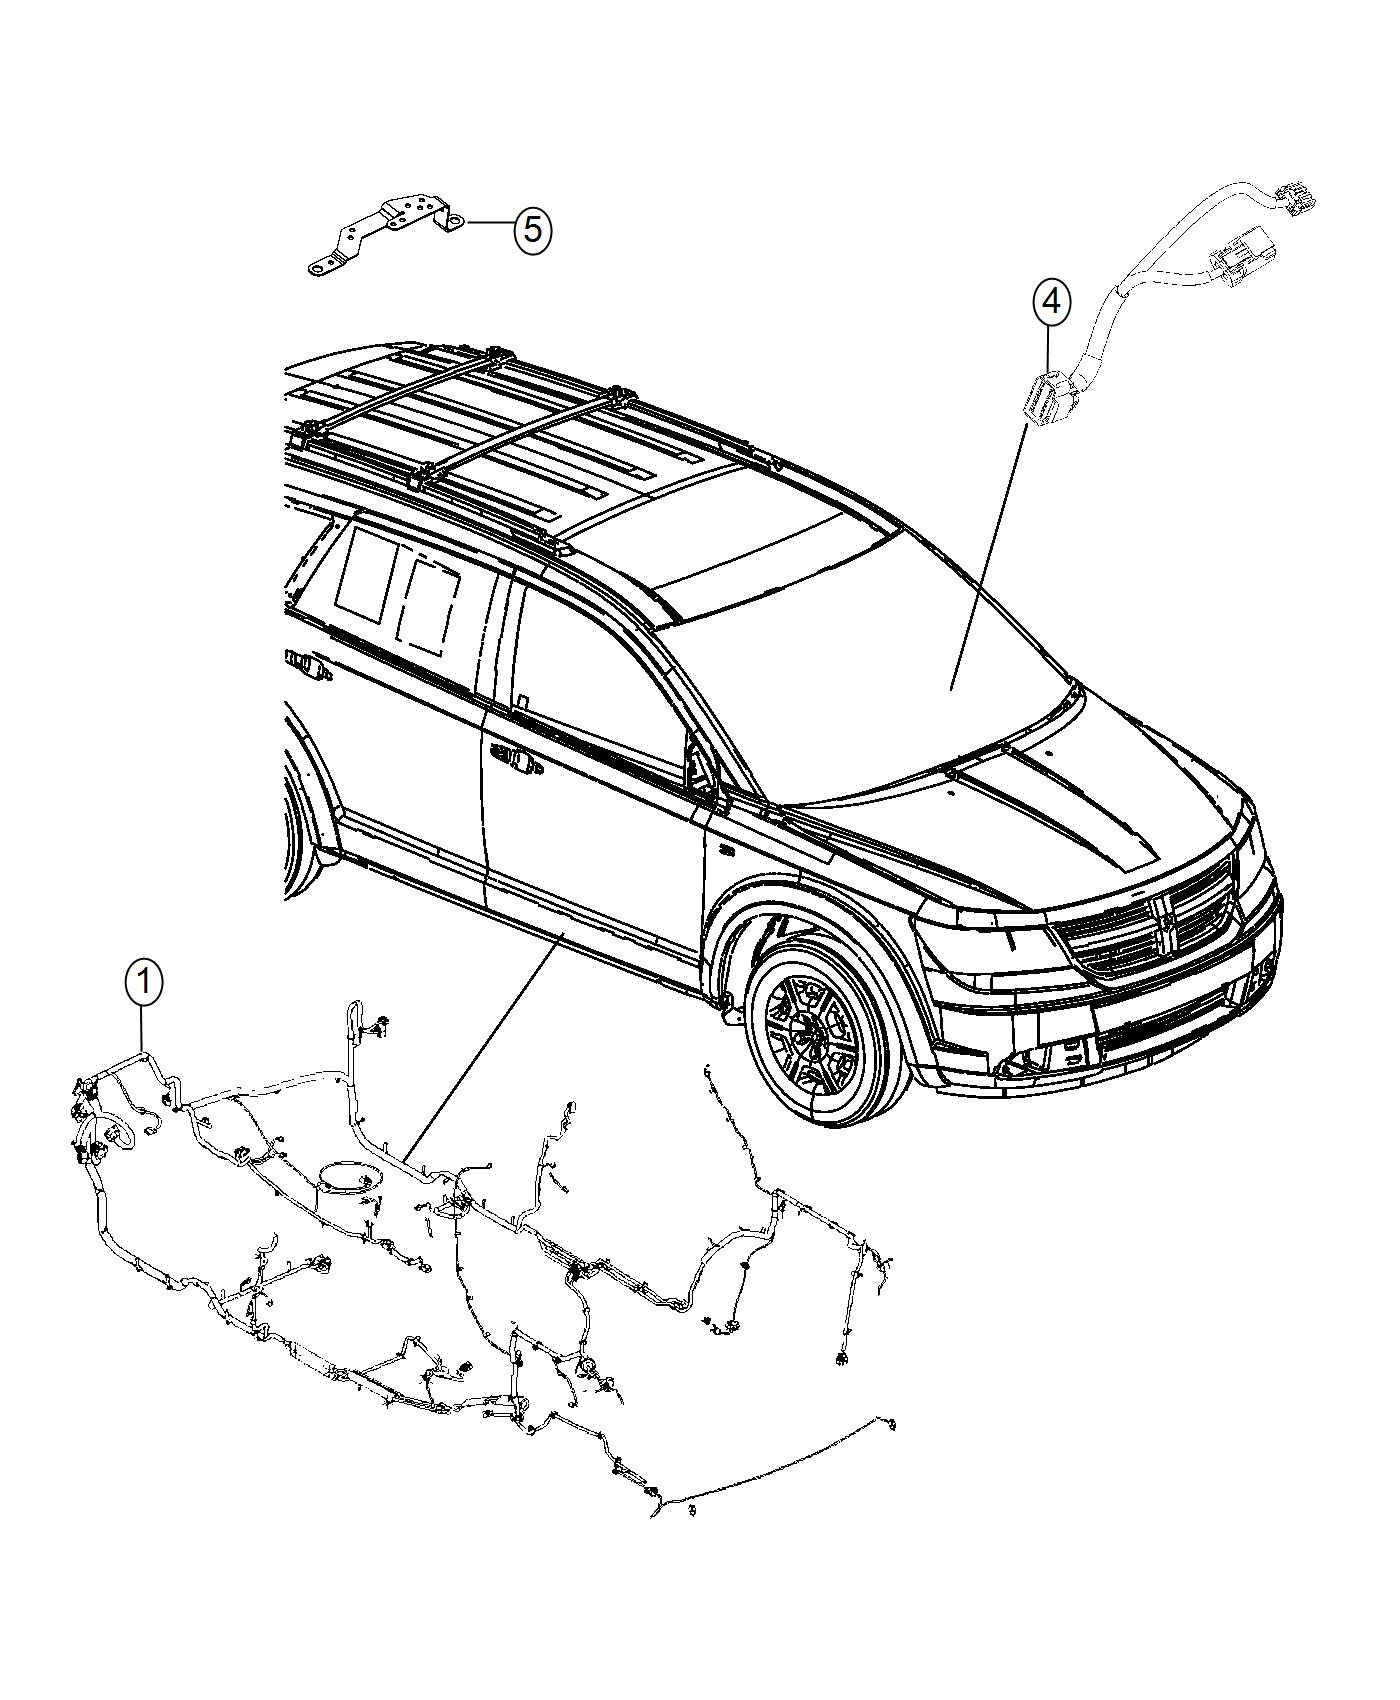 Dodge Journey Wiring. Unified body. Export. [rear air